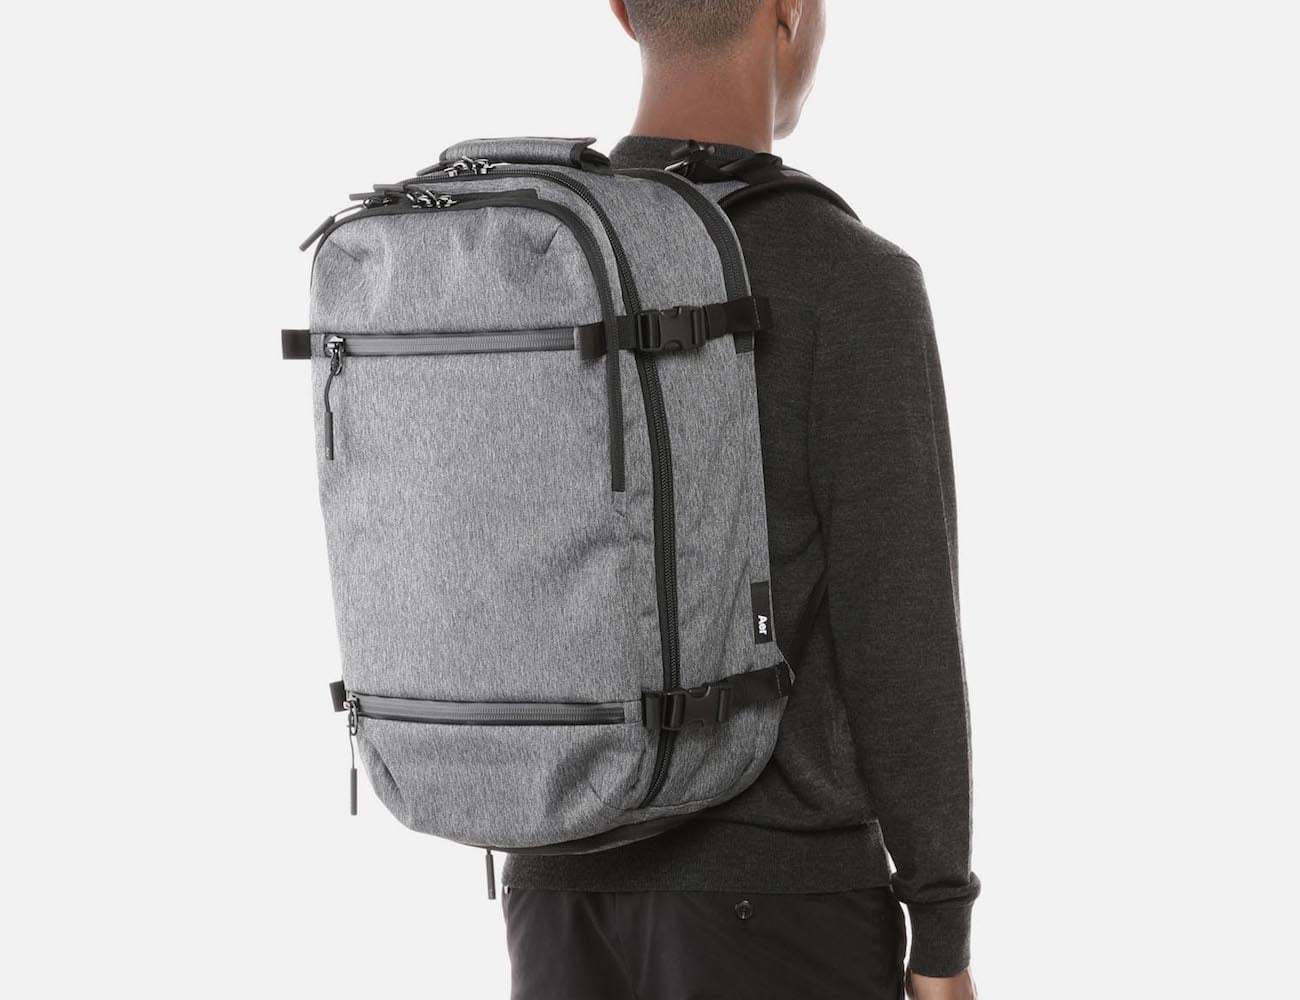 Aer Carry-On Travel Pack Backpack » Gadget Flow